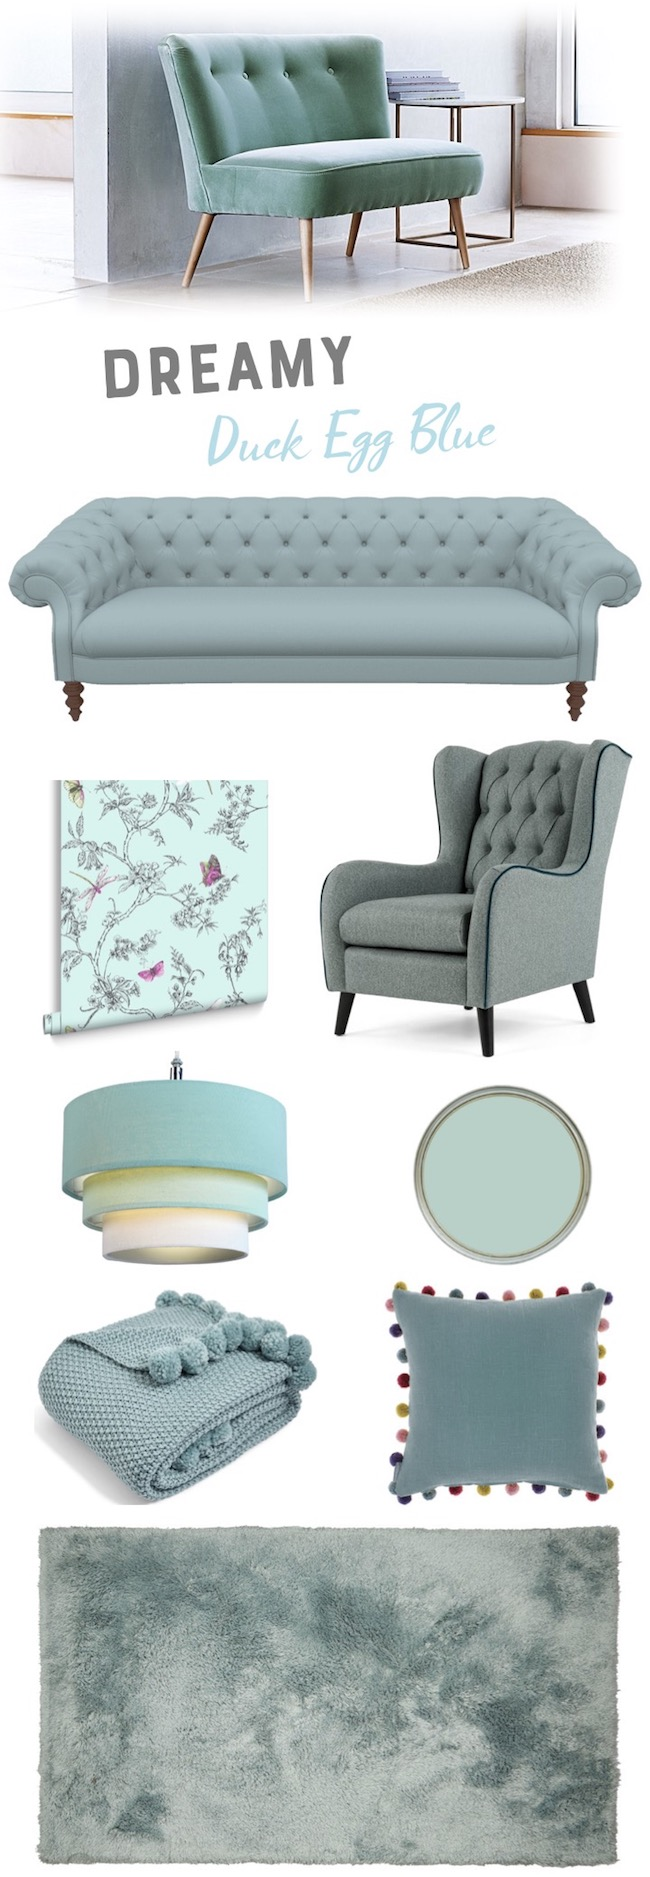 duck egg blue living room ideas mood board